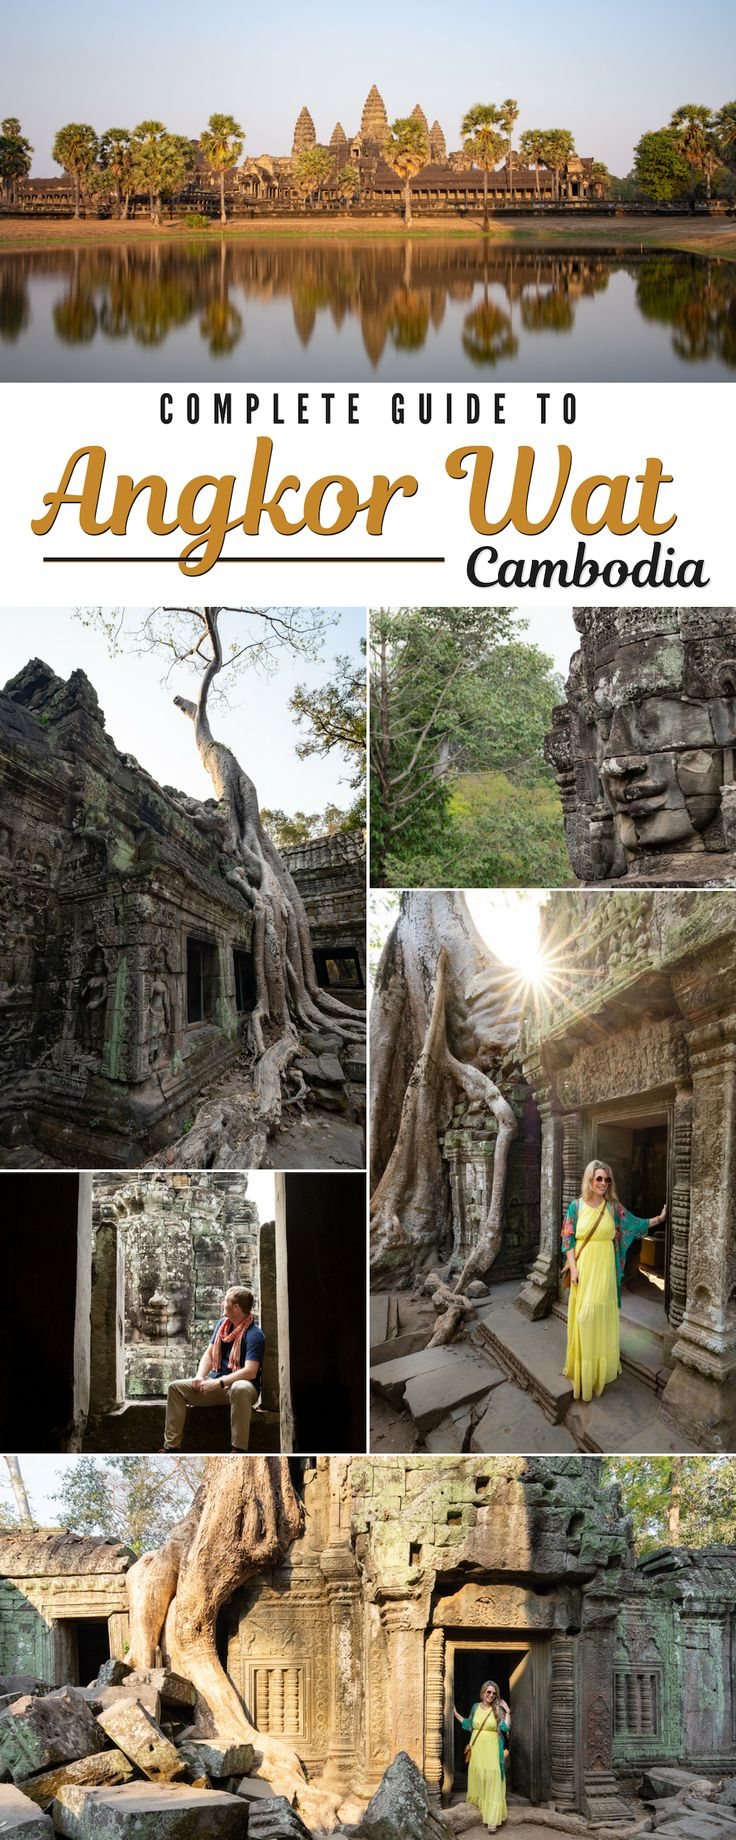 Complete Guide to Angkor Wat: The Best Temples to Visit